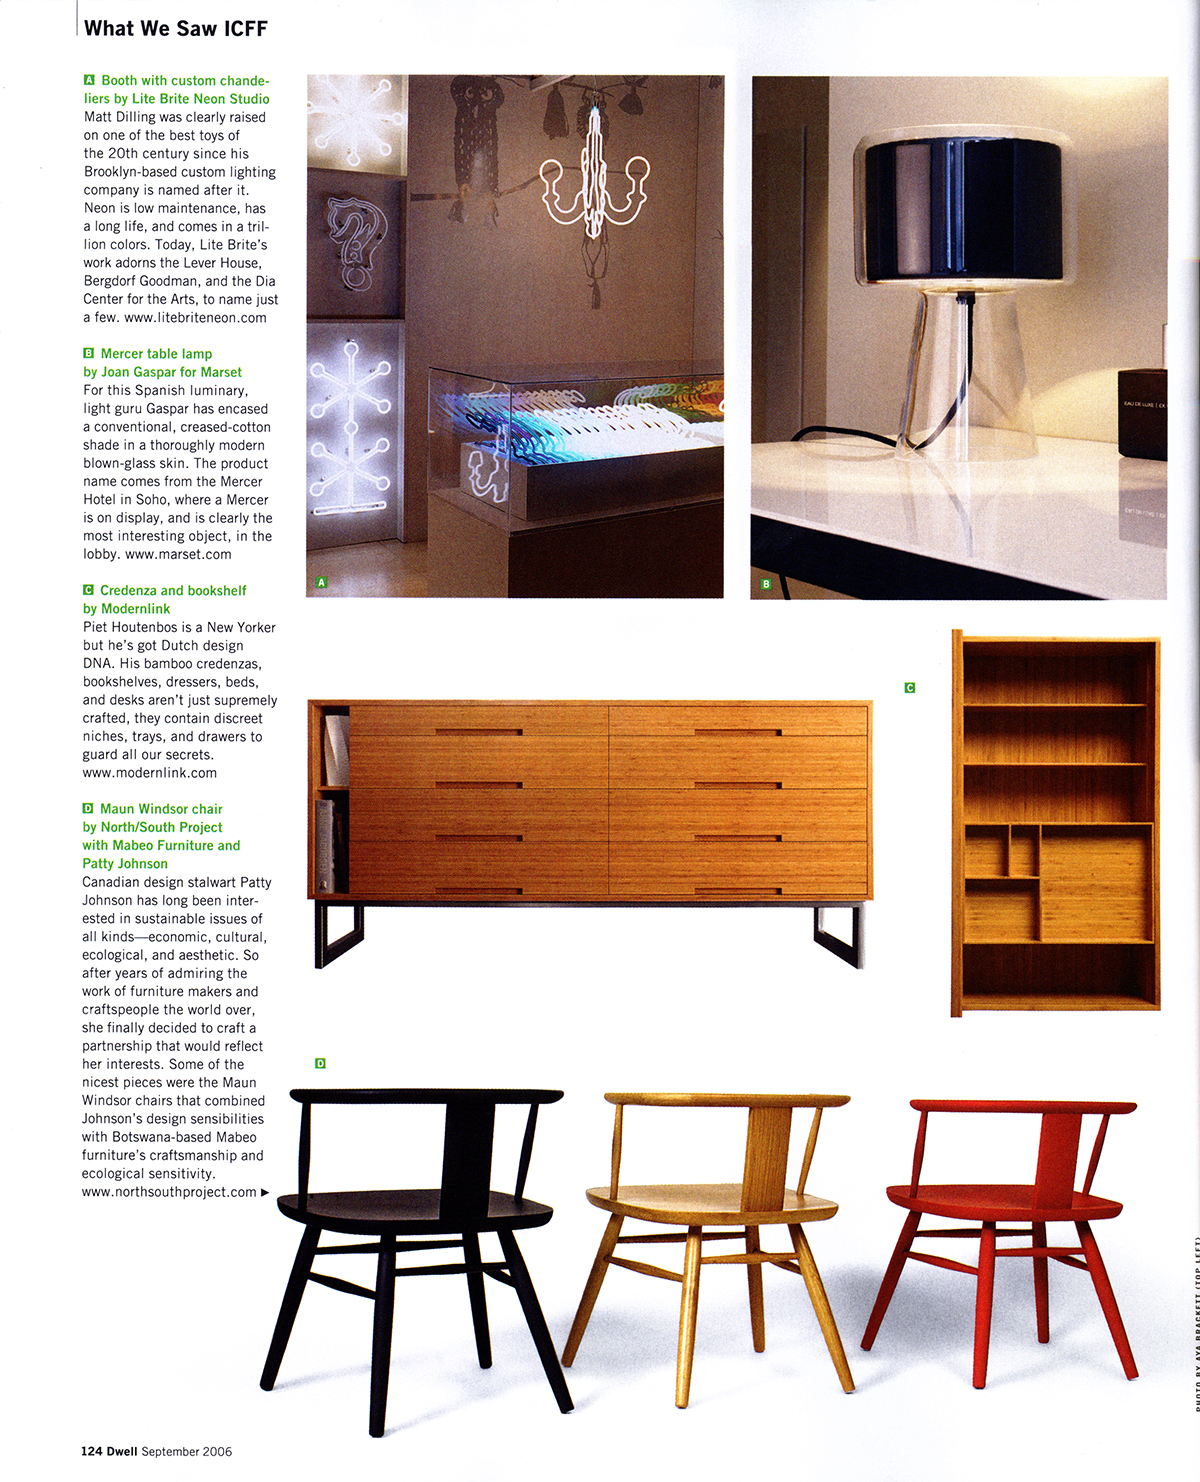 Modernlink's bamboo 'Melina' dresser and its drawer detailing designed by Piet Houtenbos featured in Dwell Magazines wrap-up of the International Contemporary Furniture Fair.